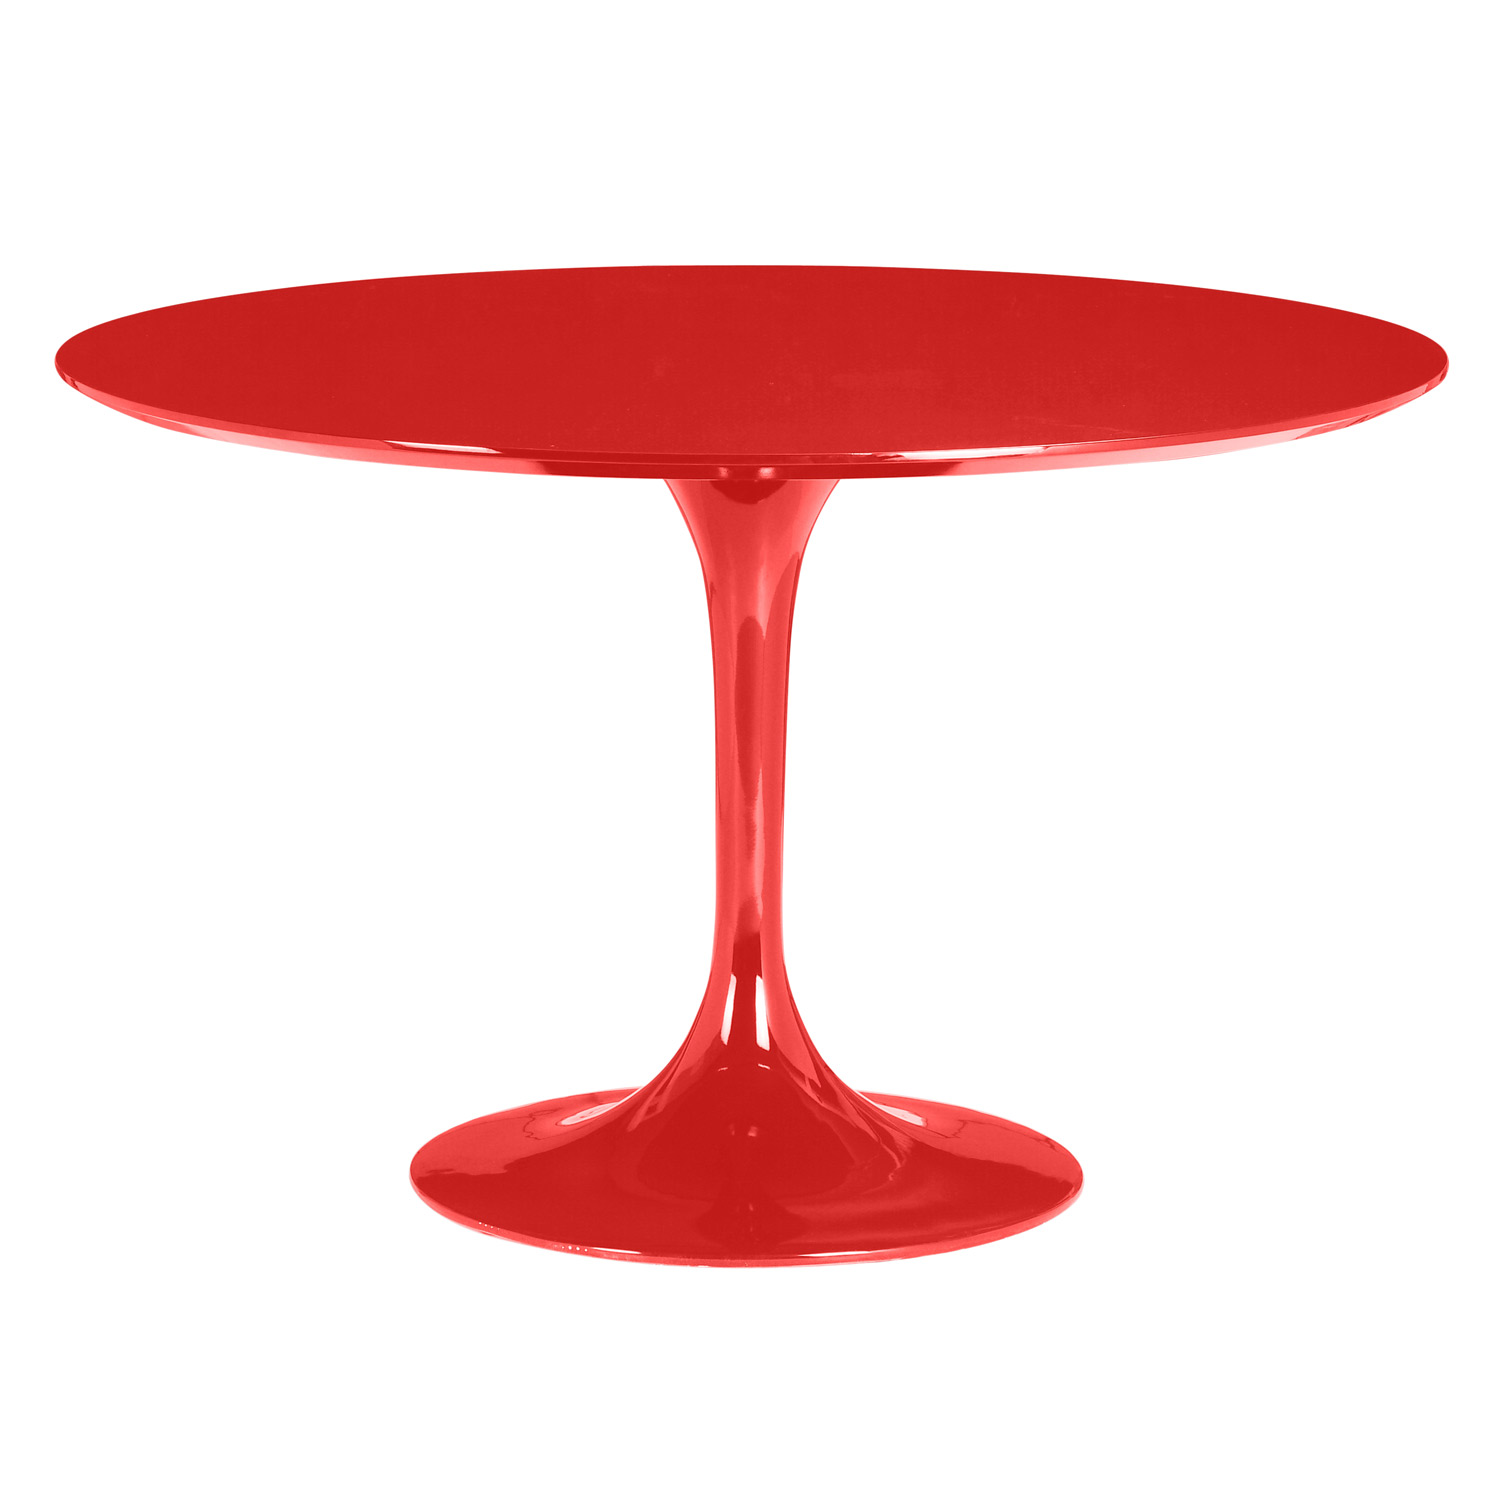 red tulip-style dining table